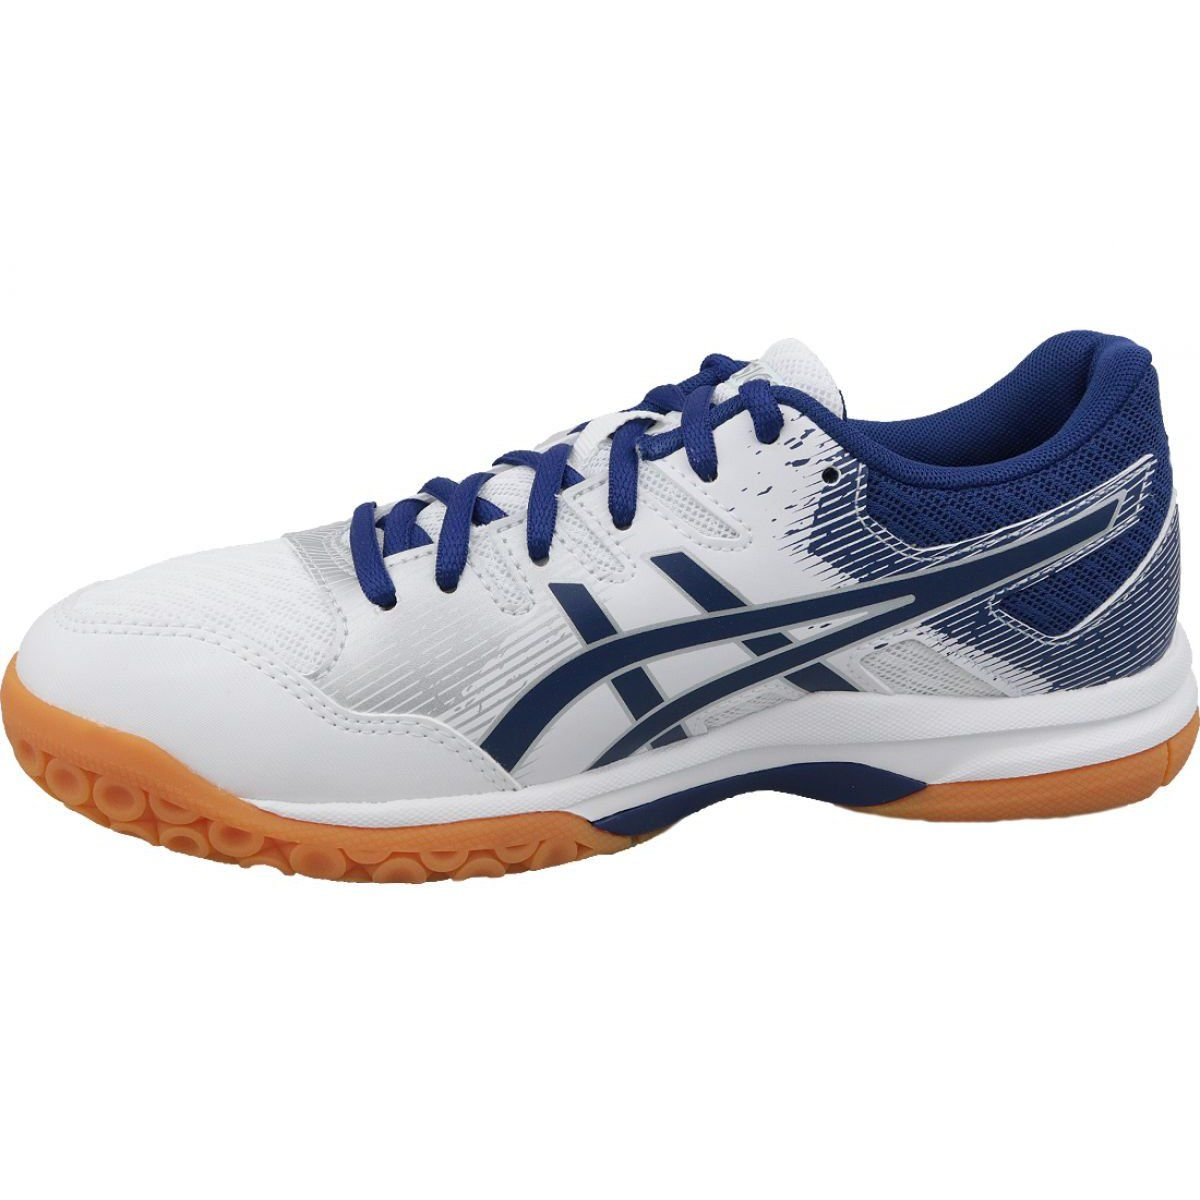 Buty Do Siatkowki Asics Gel Rocket 9 W 1072a034 102 Biale Biale Volleyball Shoes Shoes Stand Shoes